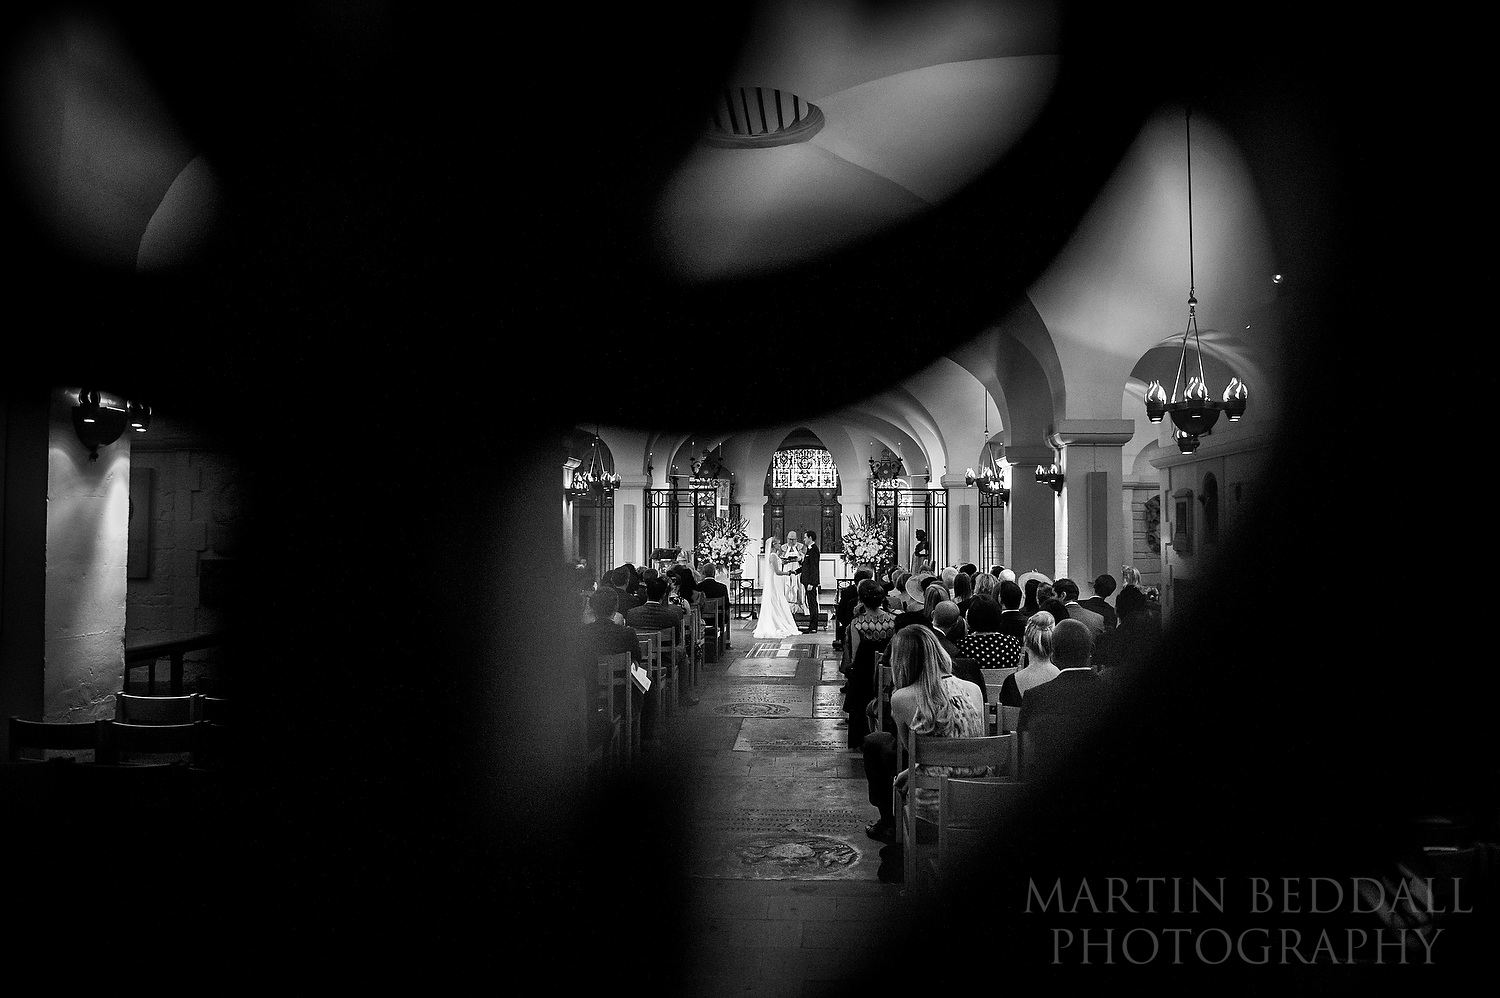 OBE Chapel wedding photography restricted to shooting through small holes in chapel door as no access allowed